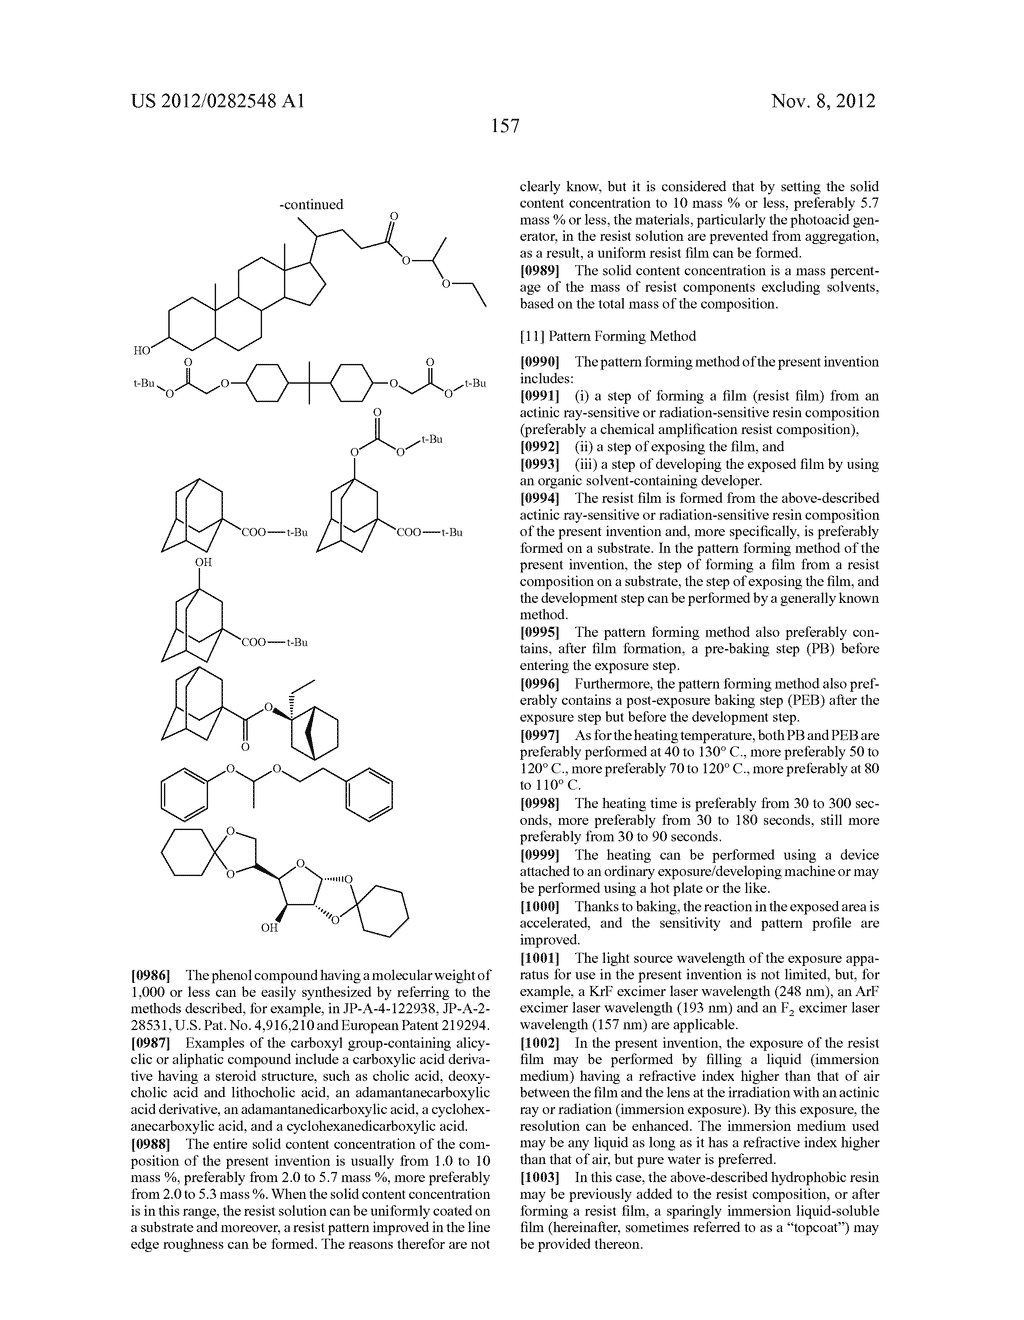 PATTERN FORMING METHOD, ACTINIC RAY-SENSITIVE OR RADIATION-SENSITIVE RESIN     COMPOSITION AND RESIST FILM - diagram, schematic, and image 158